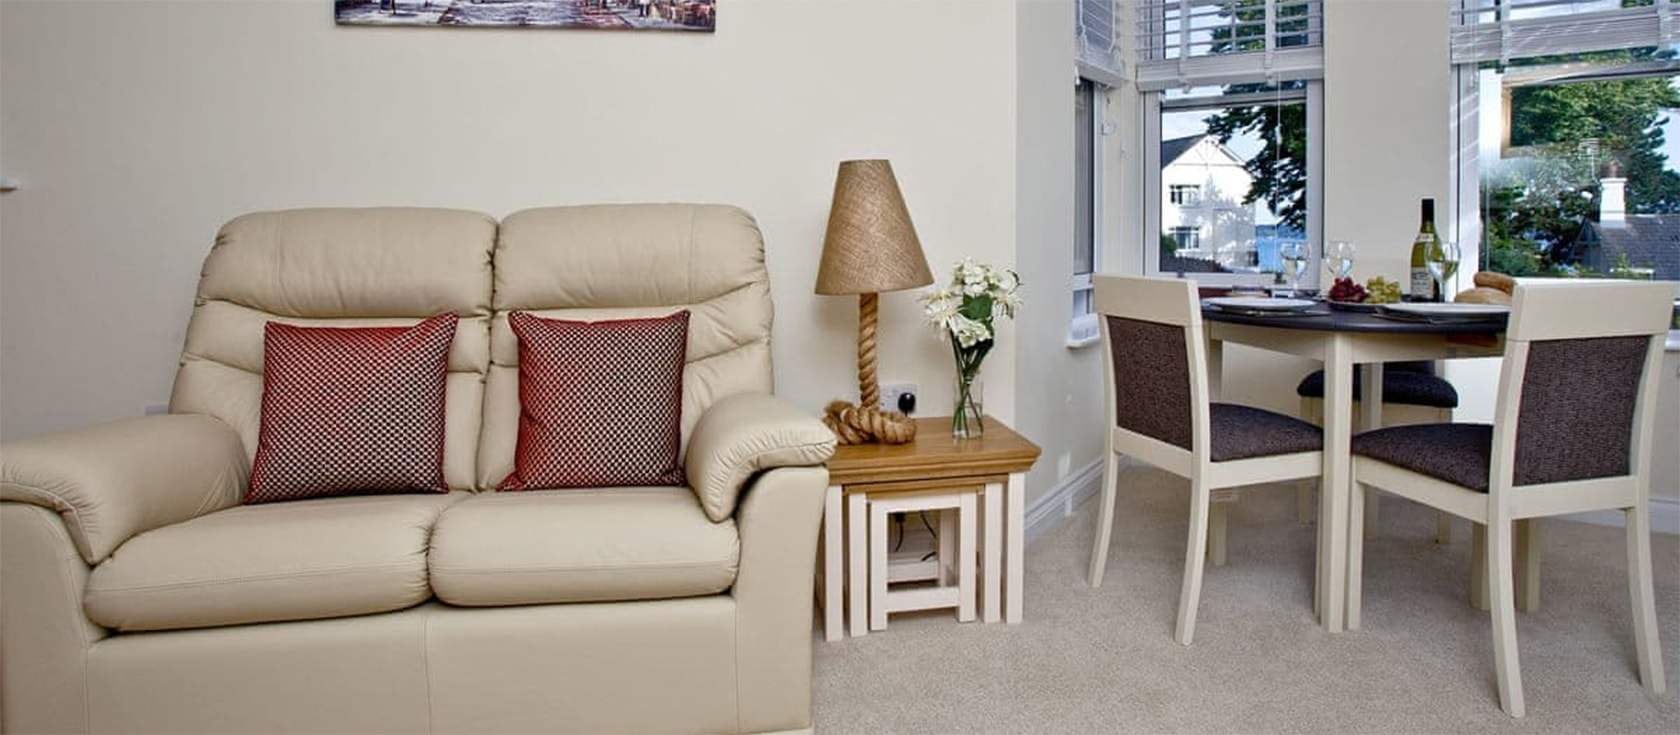 12 Seaford Sands Paignton Holiday Cottages In Devon Cornwall